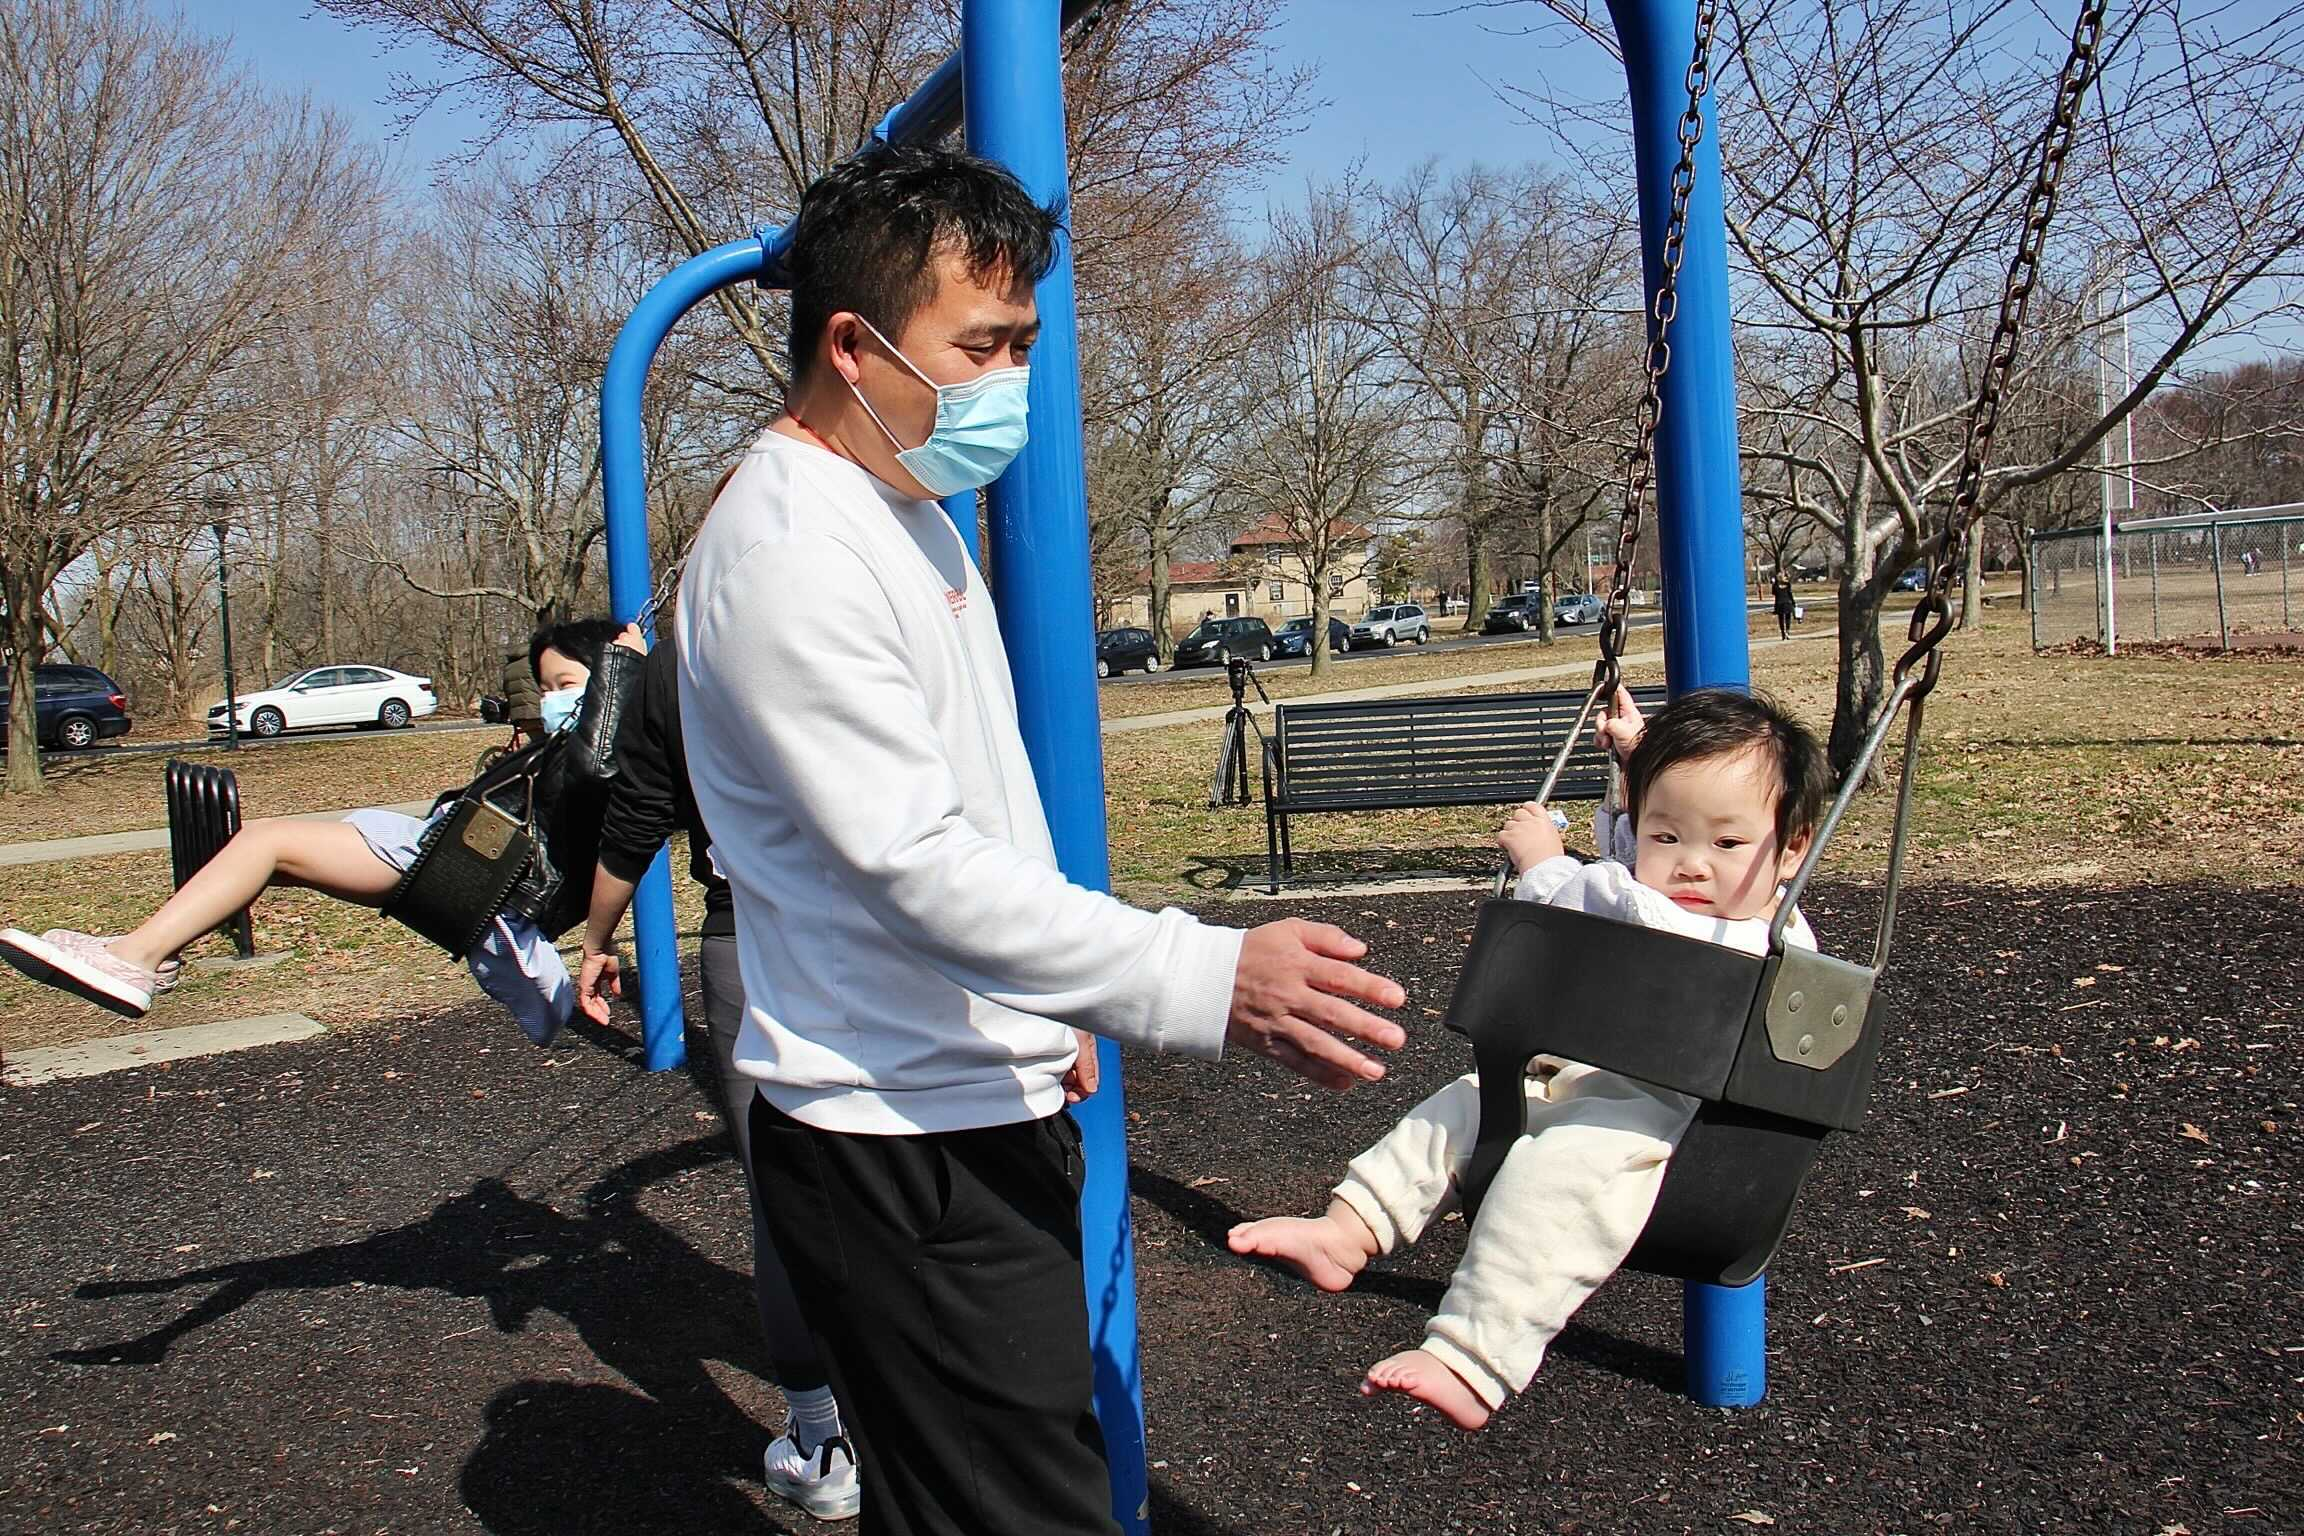 Wu Tan plays with his daughters on a swing set at FDR Park